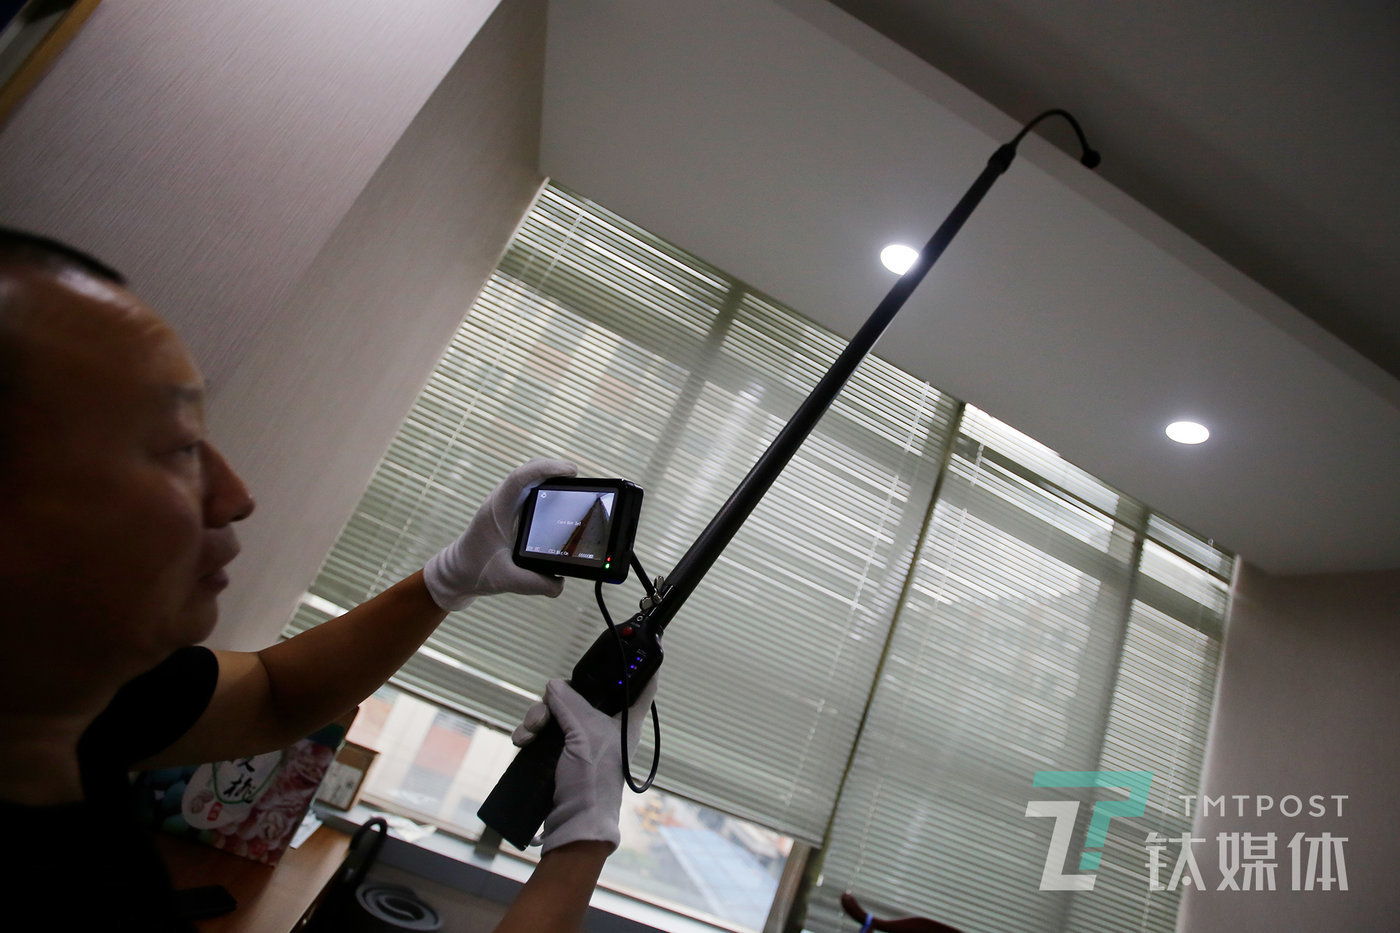 The long pole is used to inspect the ceiling. A camera placed on top of the pole can be controlled to turn to different directions in real time and is equipped with the function to detect radio waves in close range.